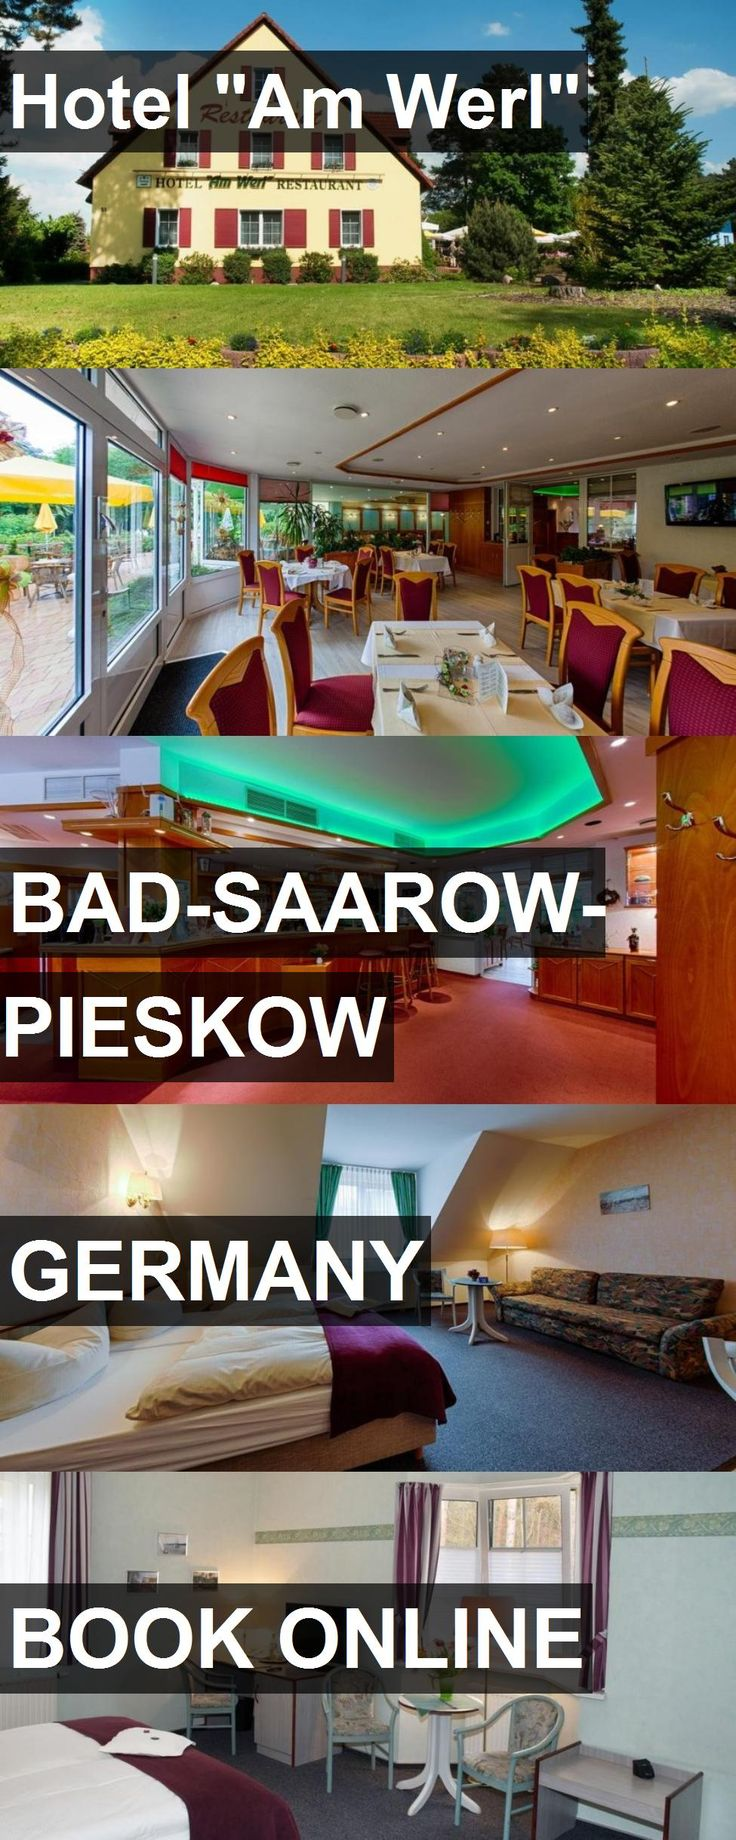 """Hotel Hotel """"Am Werl"""" in Bad-Saarow-Pieskow, Germany. For more information, photos, reviews and best prices please follow the link. #Germany #Bad-Saarow-Pieskow #Hotel""""AmWerl"""" #hotel #travel #vacation"""